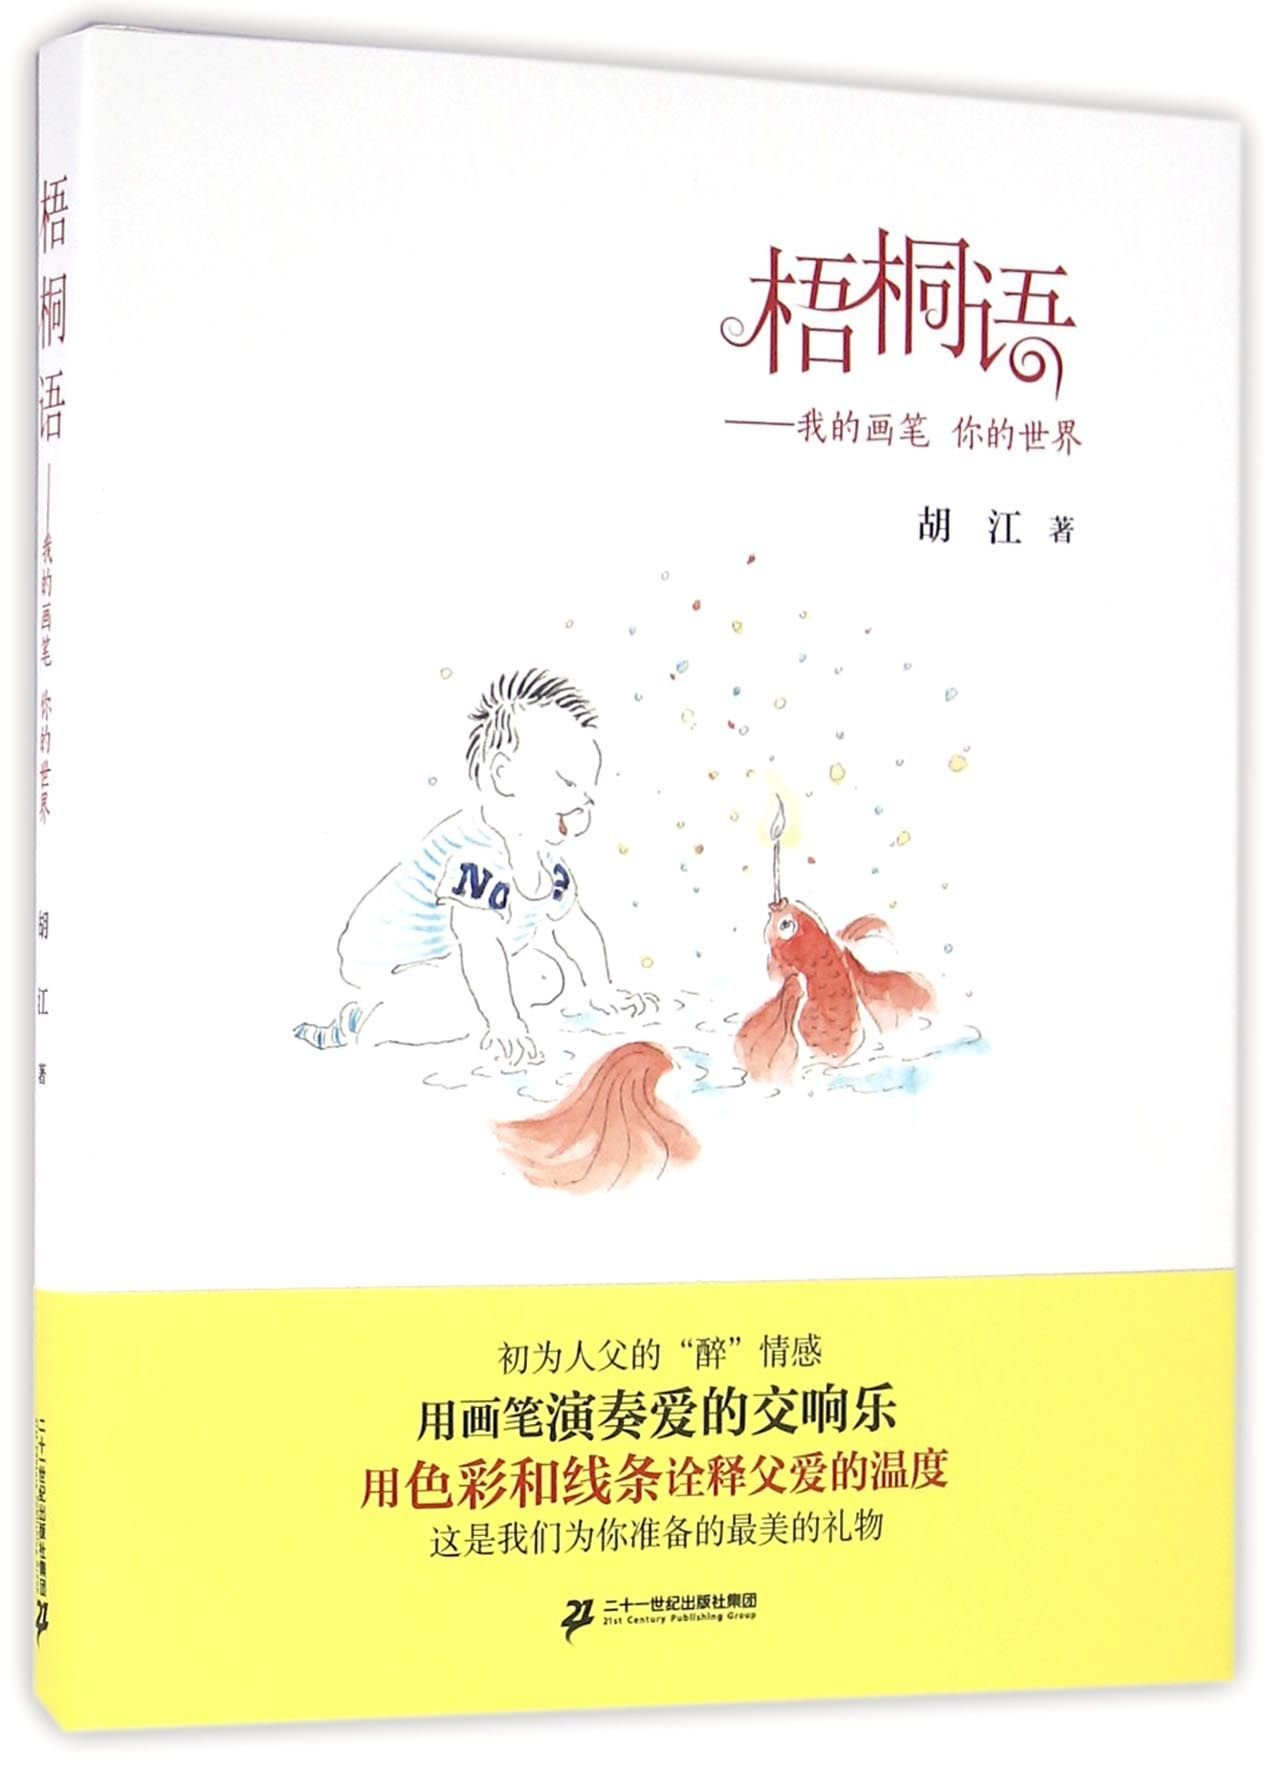 Chinese Parasol Whispers: My Brush Your World (Hardcover) (Chinese Edition) pdf